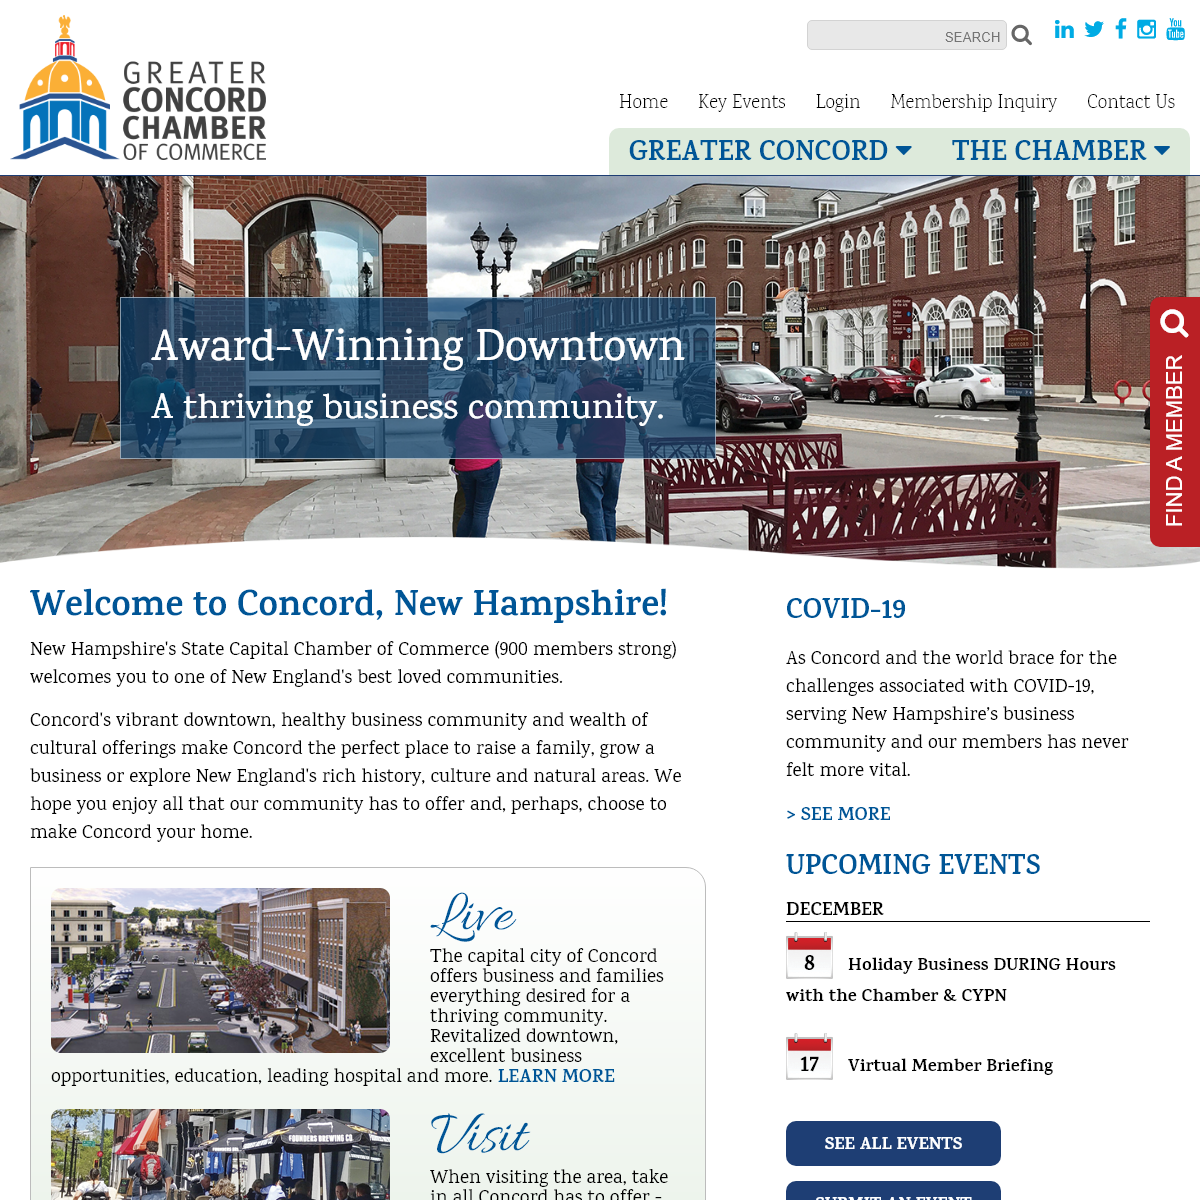 Greater Concord Chamber of Commerce - Home